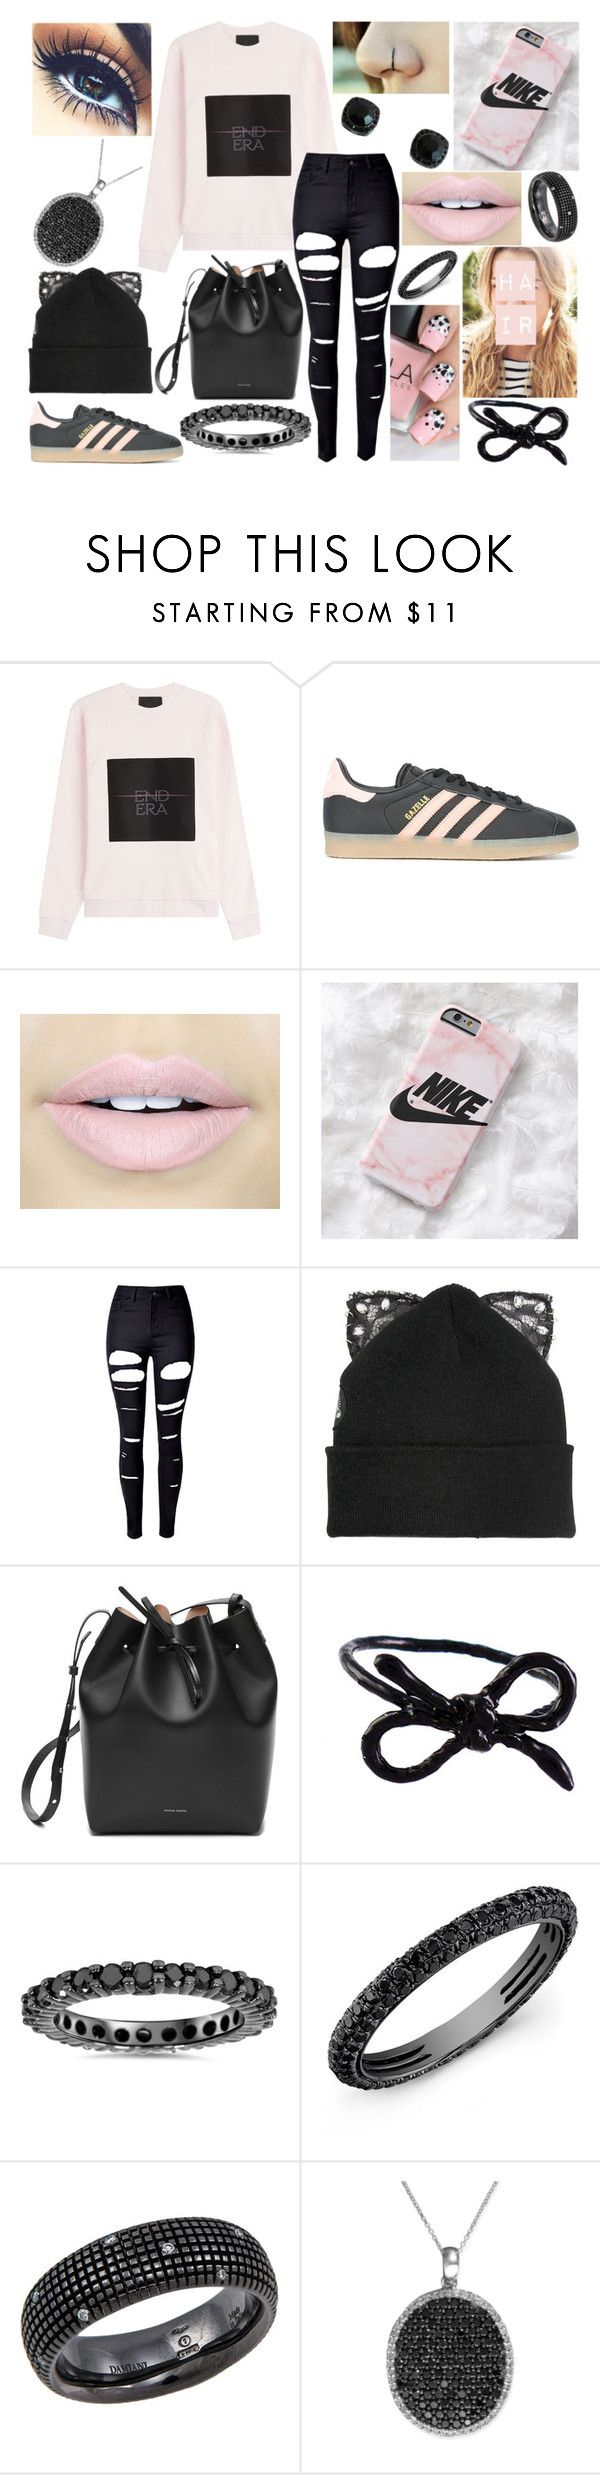 """""""OOTD-Monday, December 19"""" by kenziebandgeek ❤ liked on Polyvore featuring Alexander Wang, adidas, Fiebiger, WithChic, Silver Spoon Attire, Mansur Gavriel, Areaware, Anne Sisteron, Damiani and R.H. Macy's & Co."""